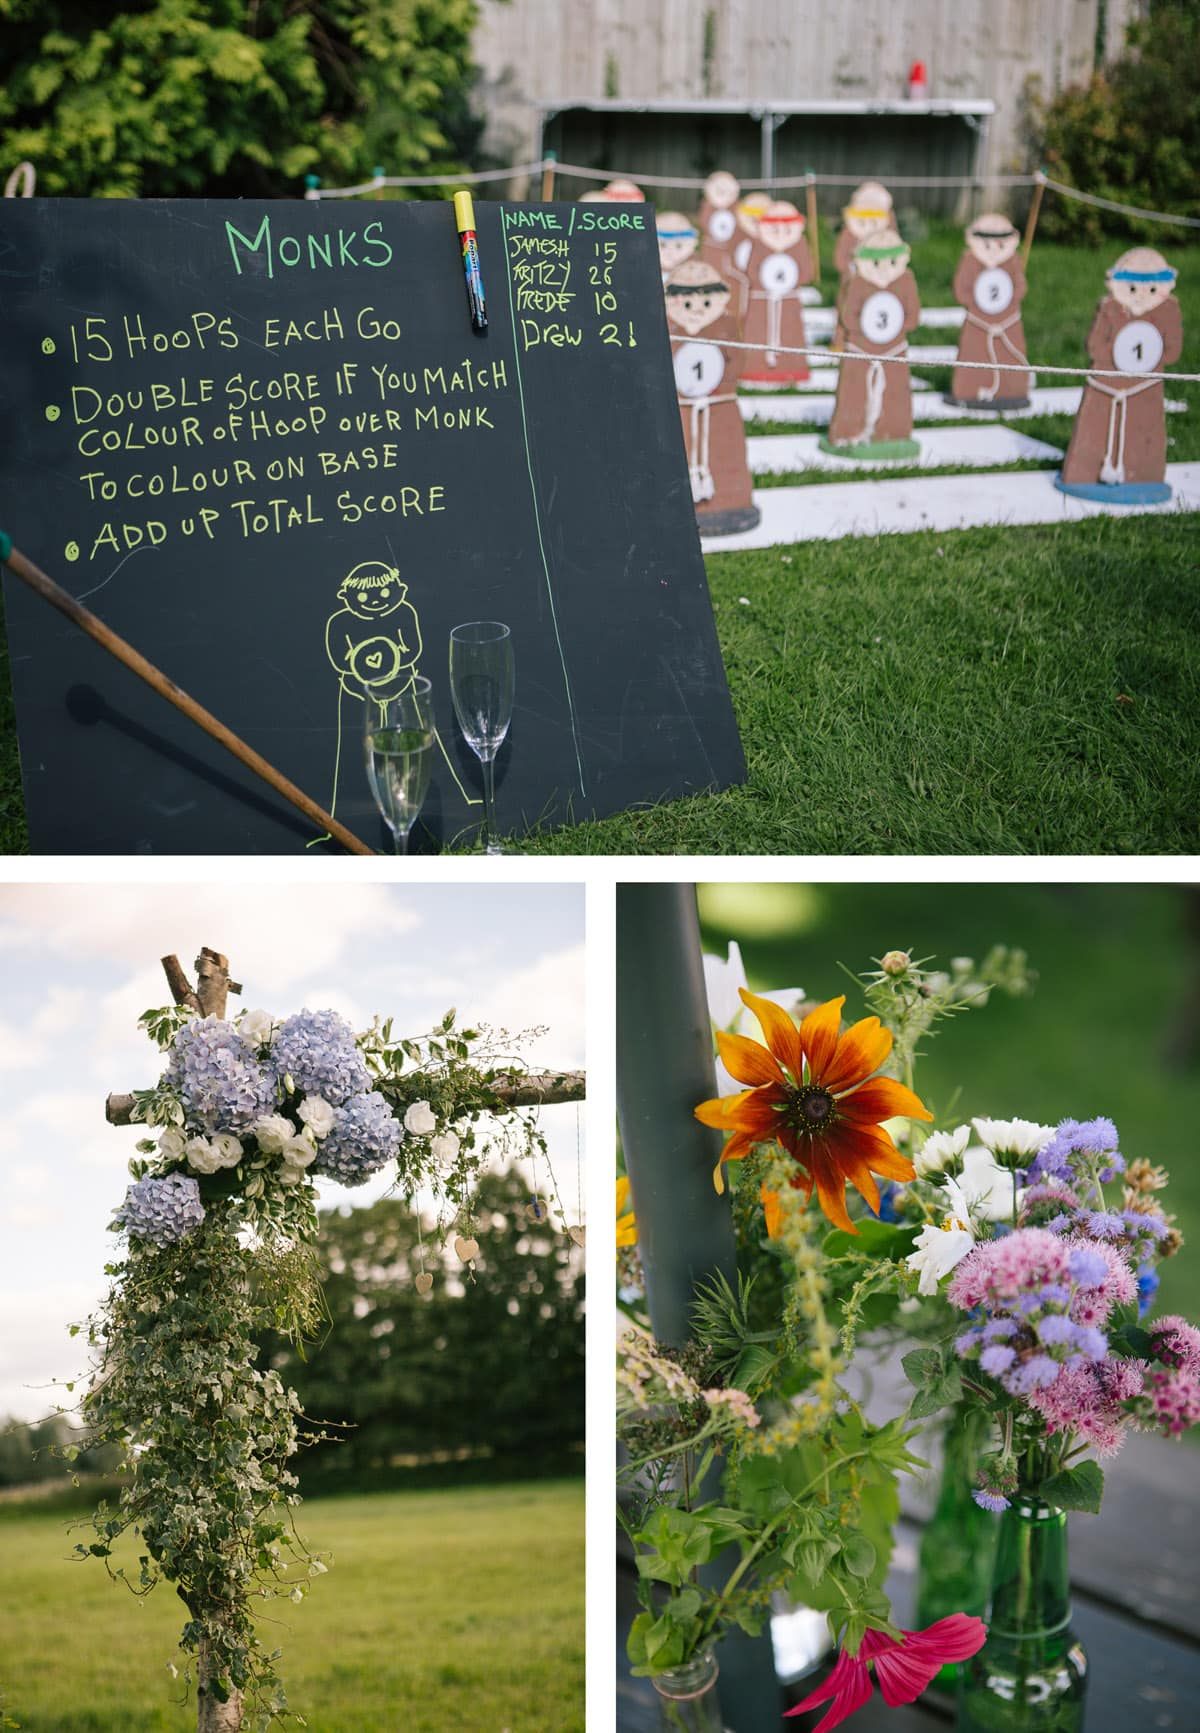 Clockwise from left: A close up of the ceremony arch decked out in flowers; one of the quirky garden games - monks hoopla; a close up of some of the bright flowers in bud vases